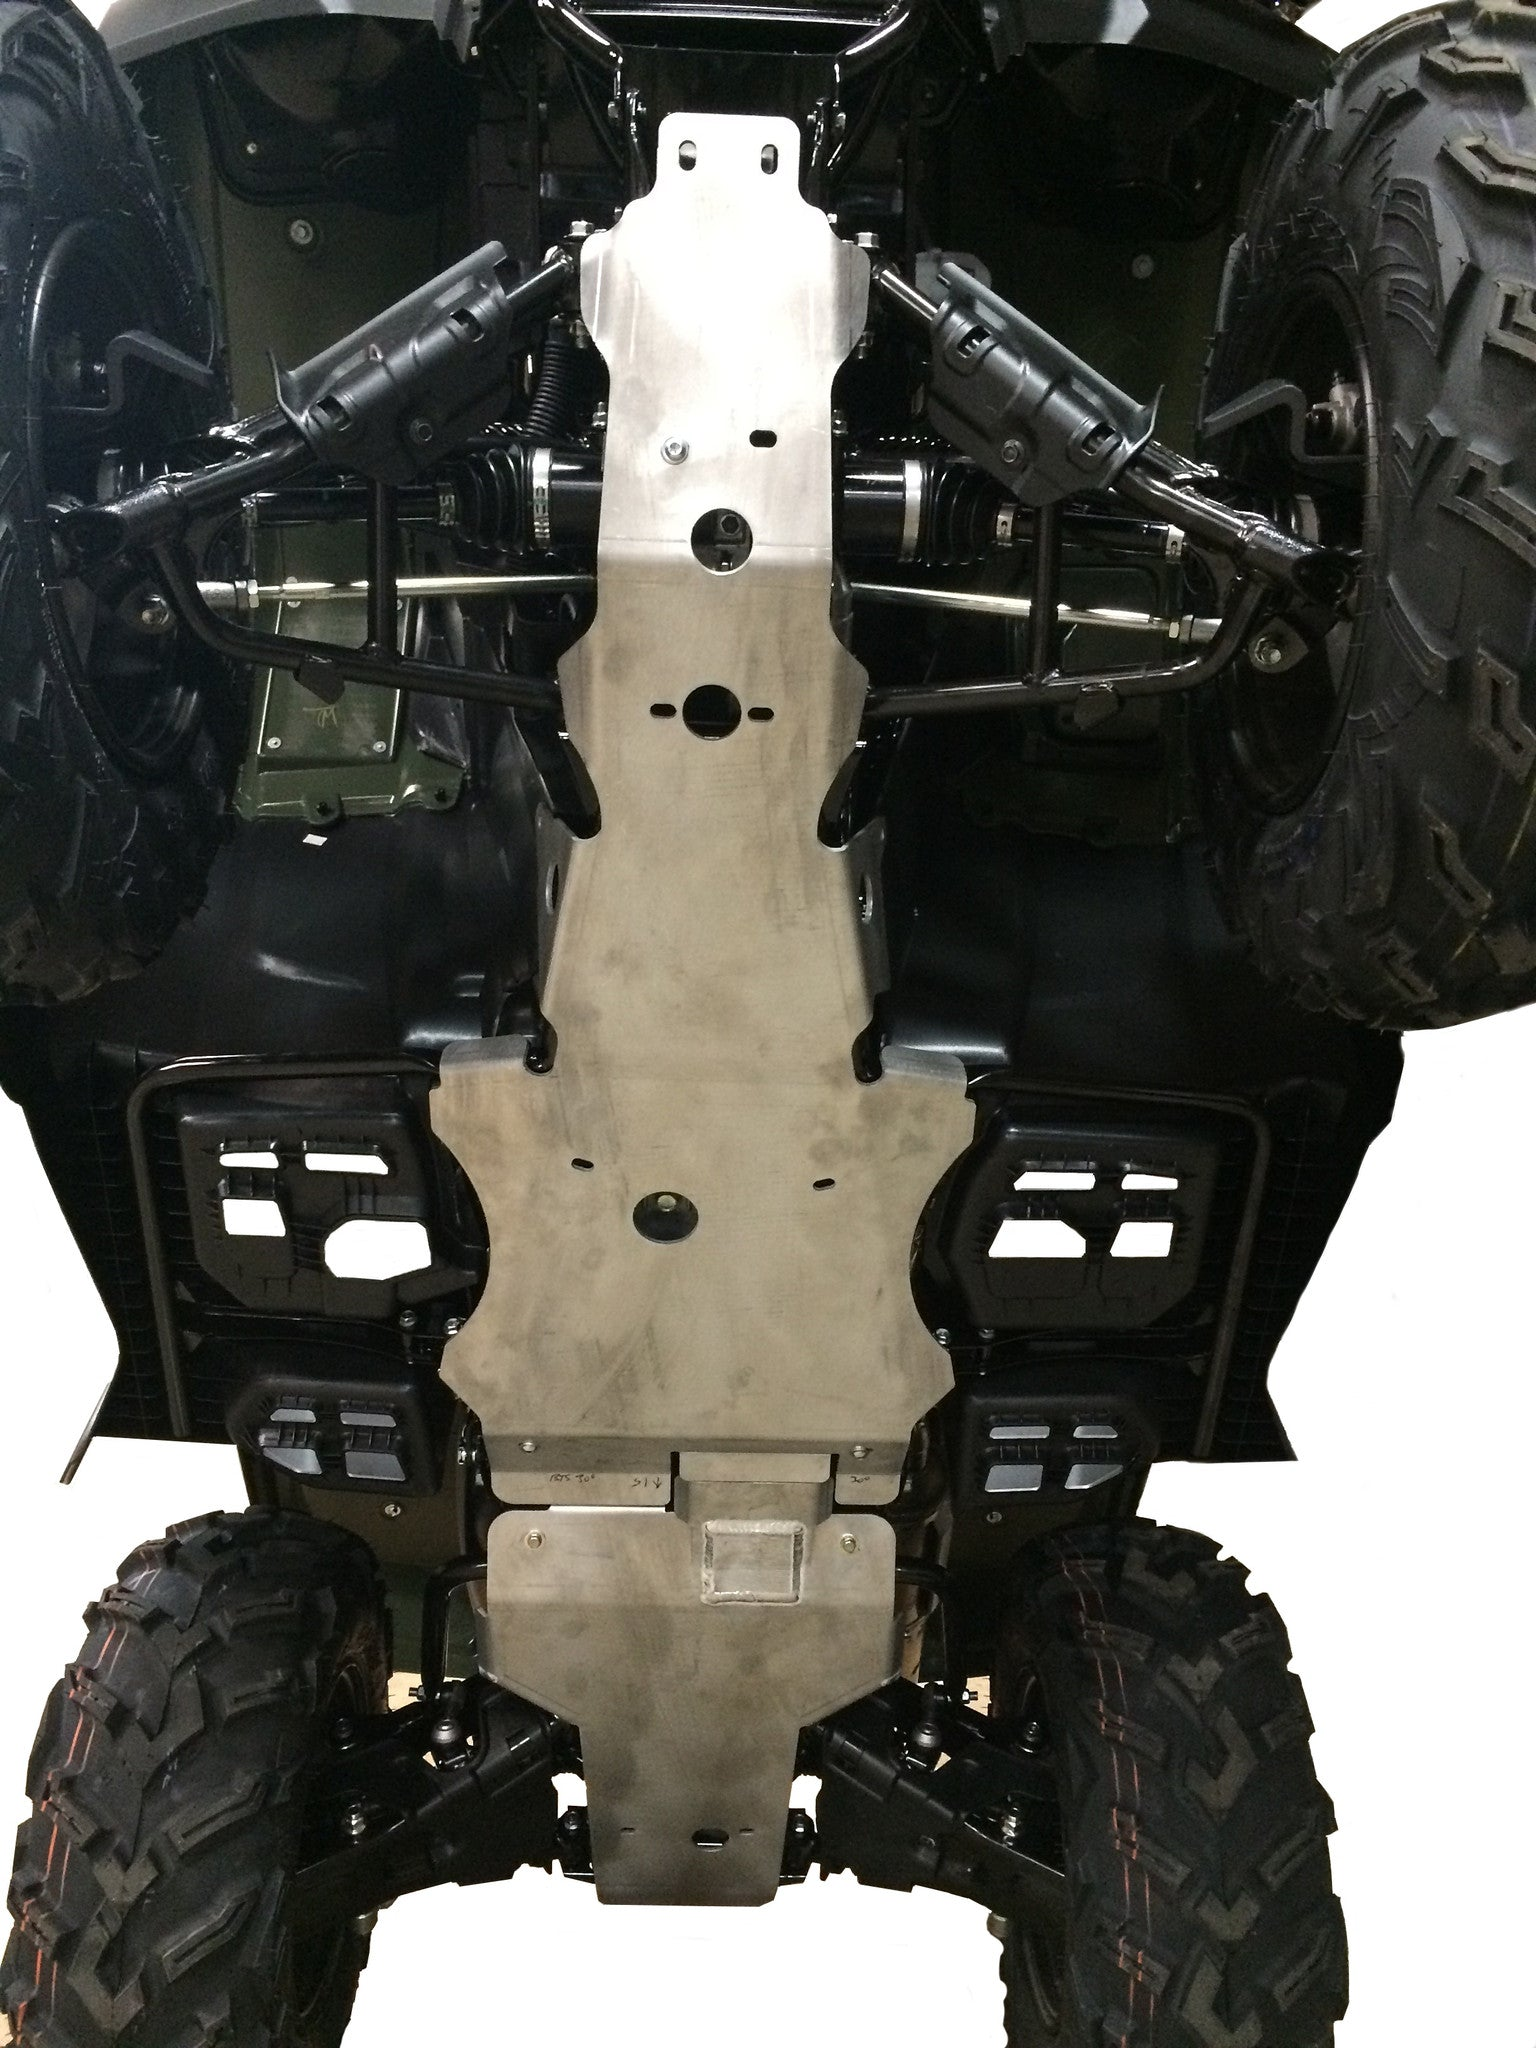 3-Piece Full Frame Skid Plate Set, Honda FourTrax Rubicon